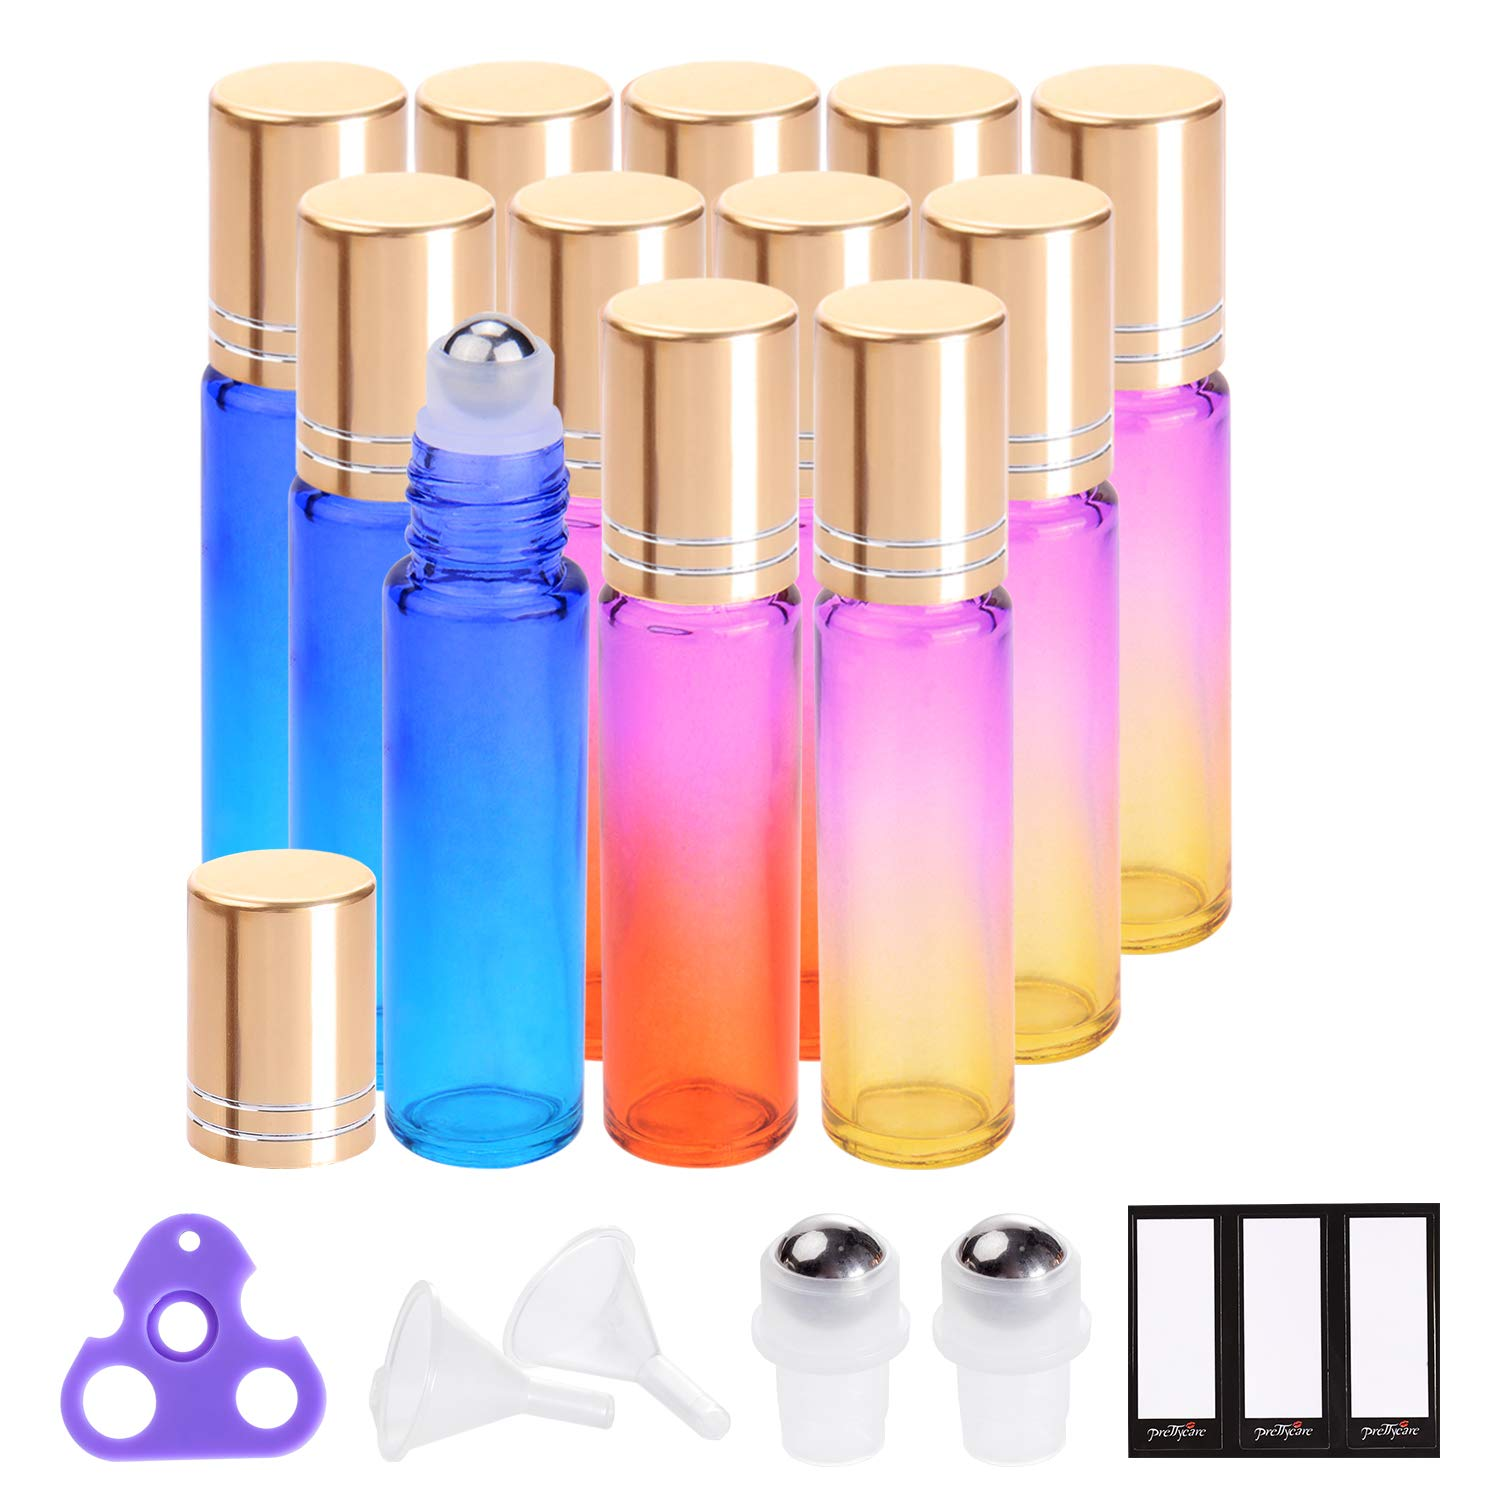 Essential Oil Roller Bottles 10ml by PrettyCare (12 Pack Rainbow Glass, Golden Cap, 24 Labels, 2 Extra Roller Balls, Opener, 2 Funnels) Roller Balls for Essential Oils, Roll on Bottles by PrettyCare